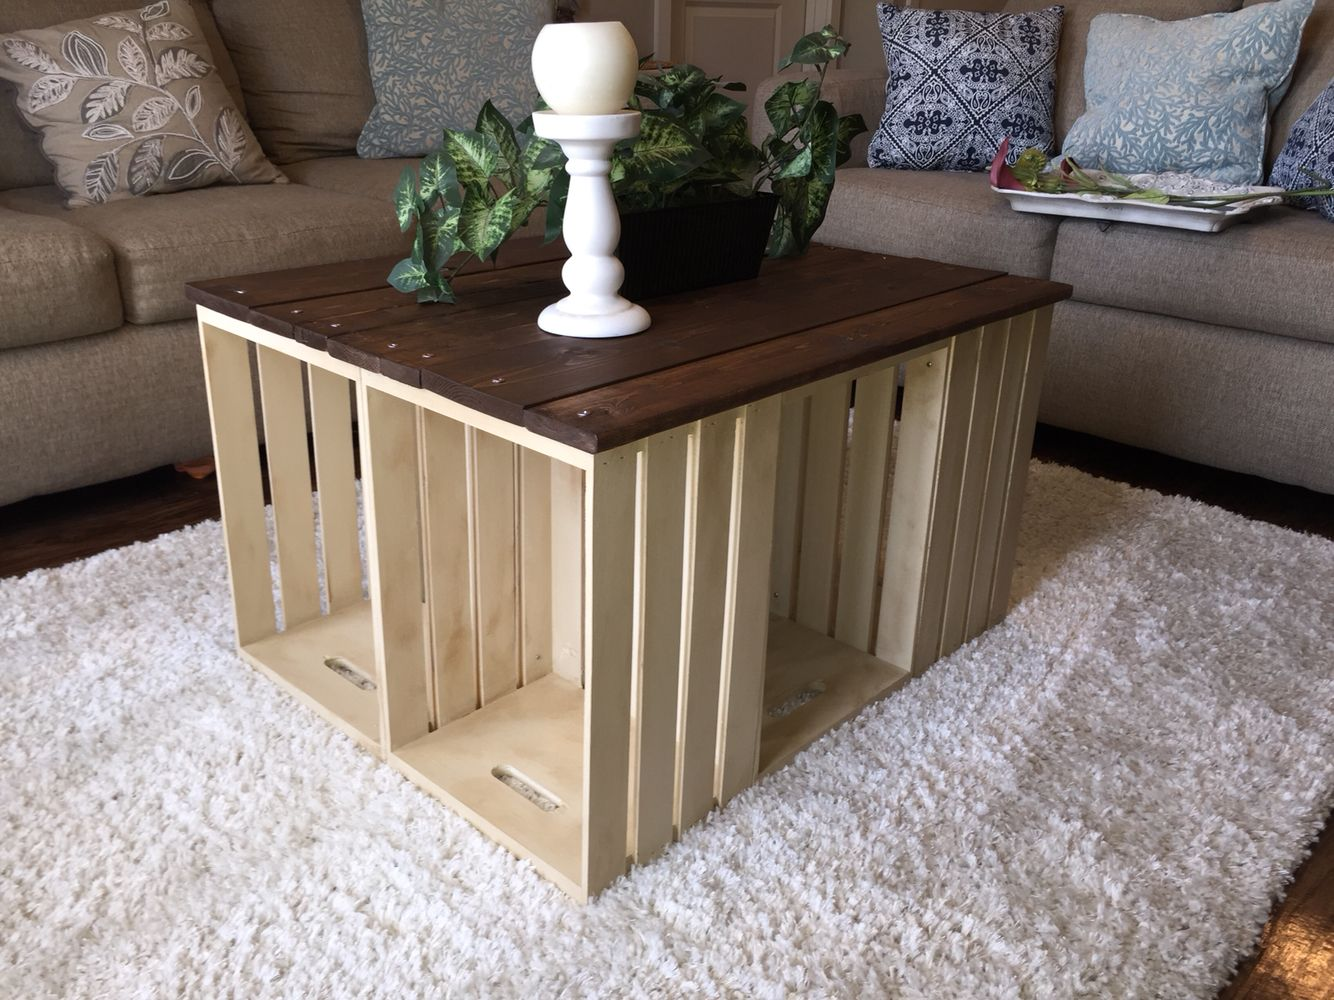 Country french crate coffee table dream home pinterest country french crate coffee table geotapseo Images